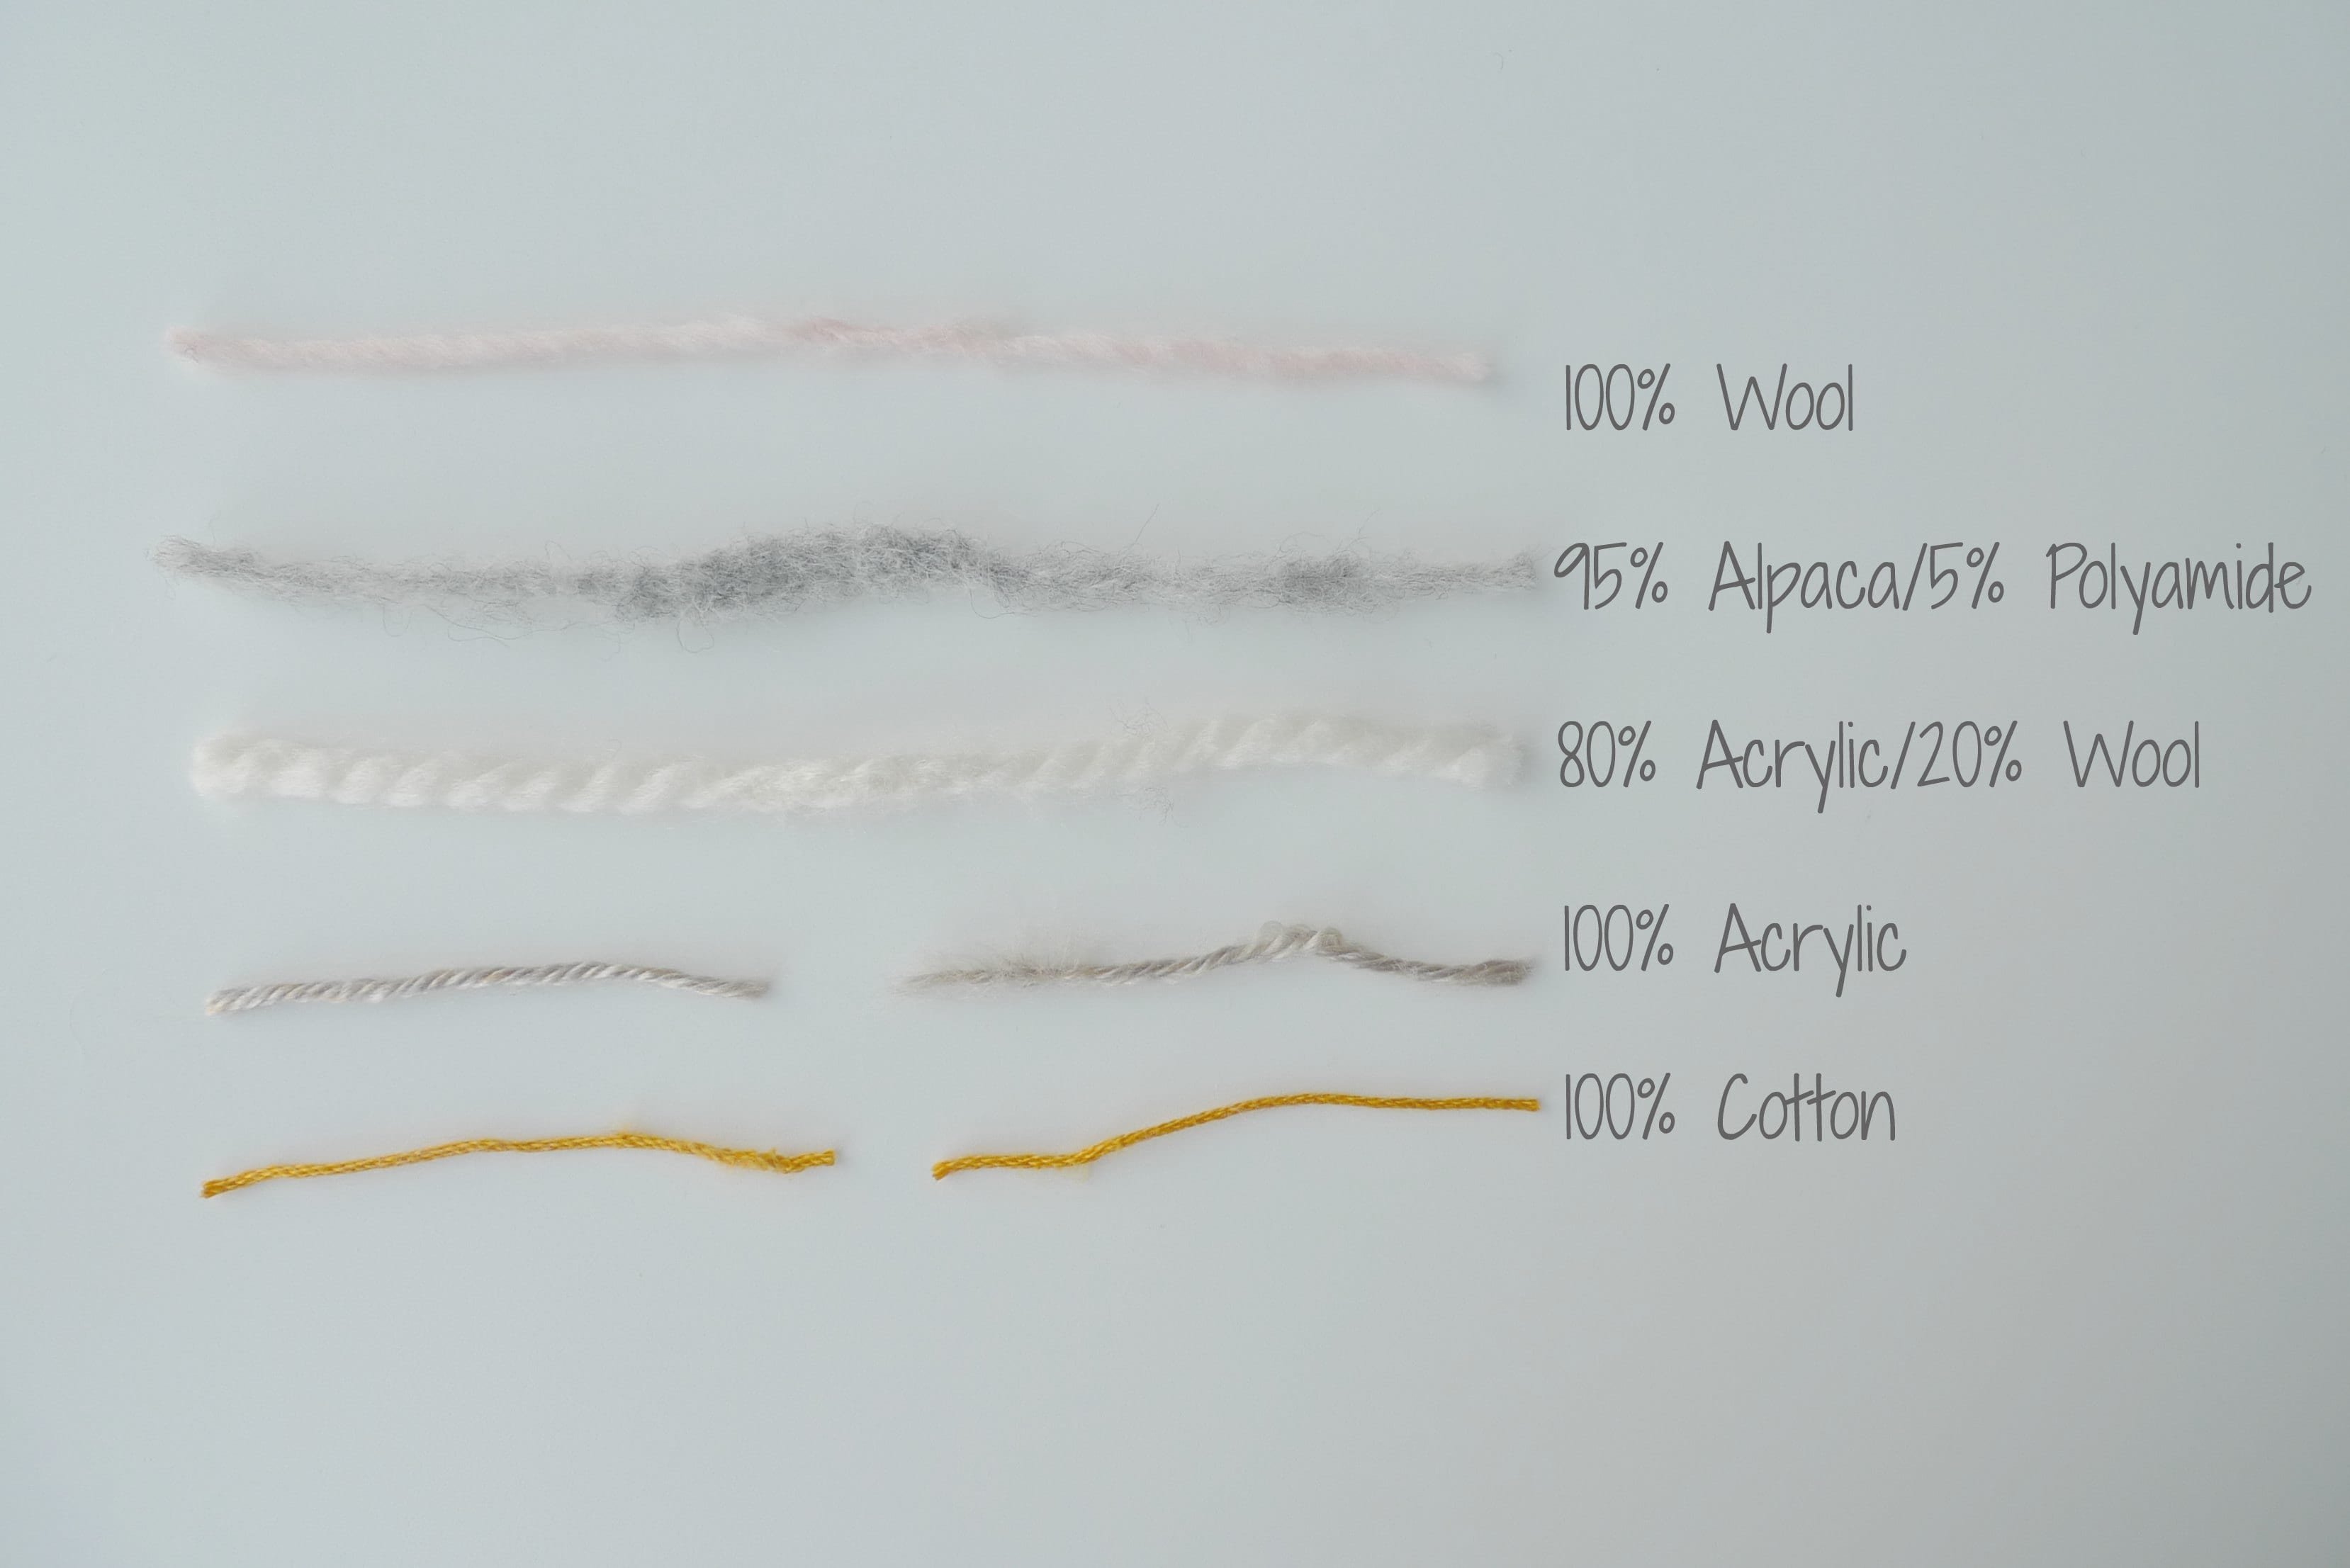 Felting Different Types of Yarn